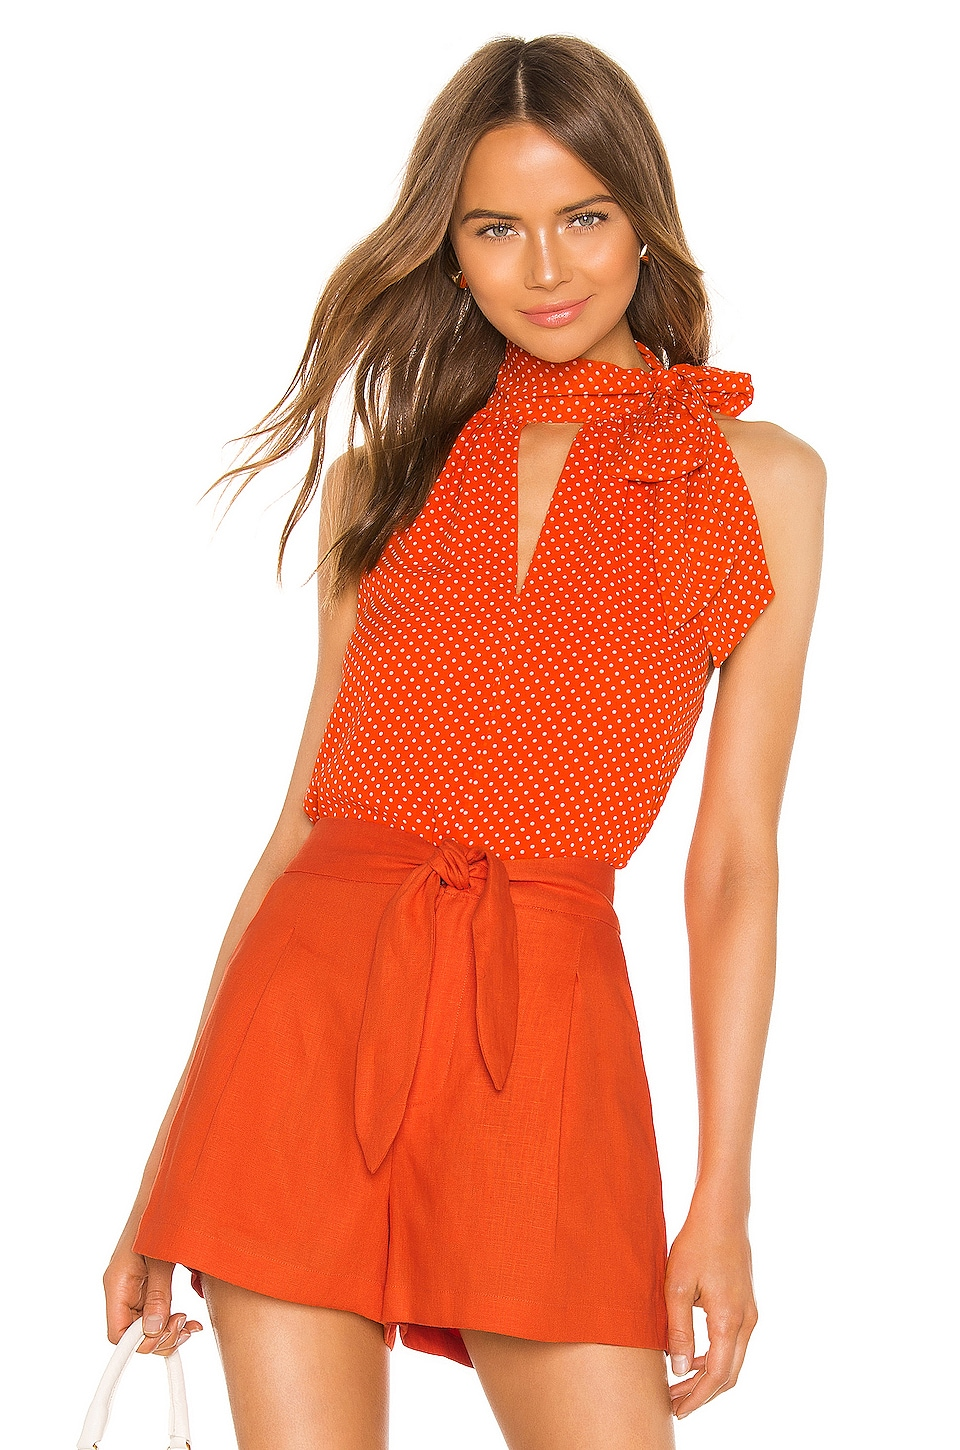 Joie Dalman Blouse in Warm Terracotta